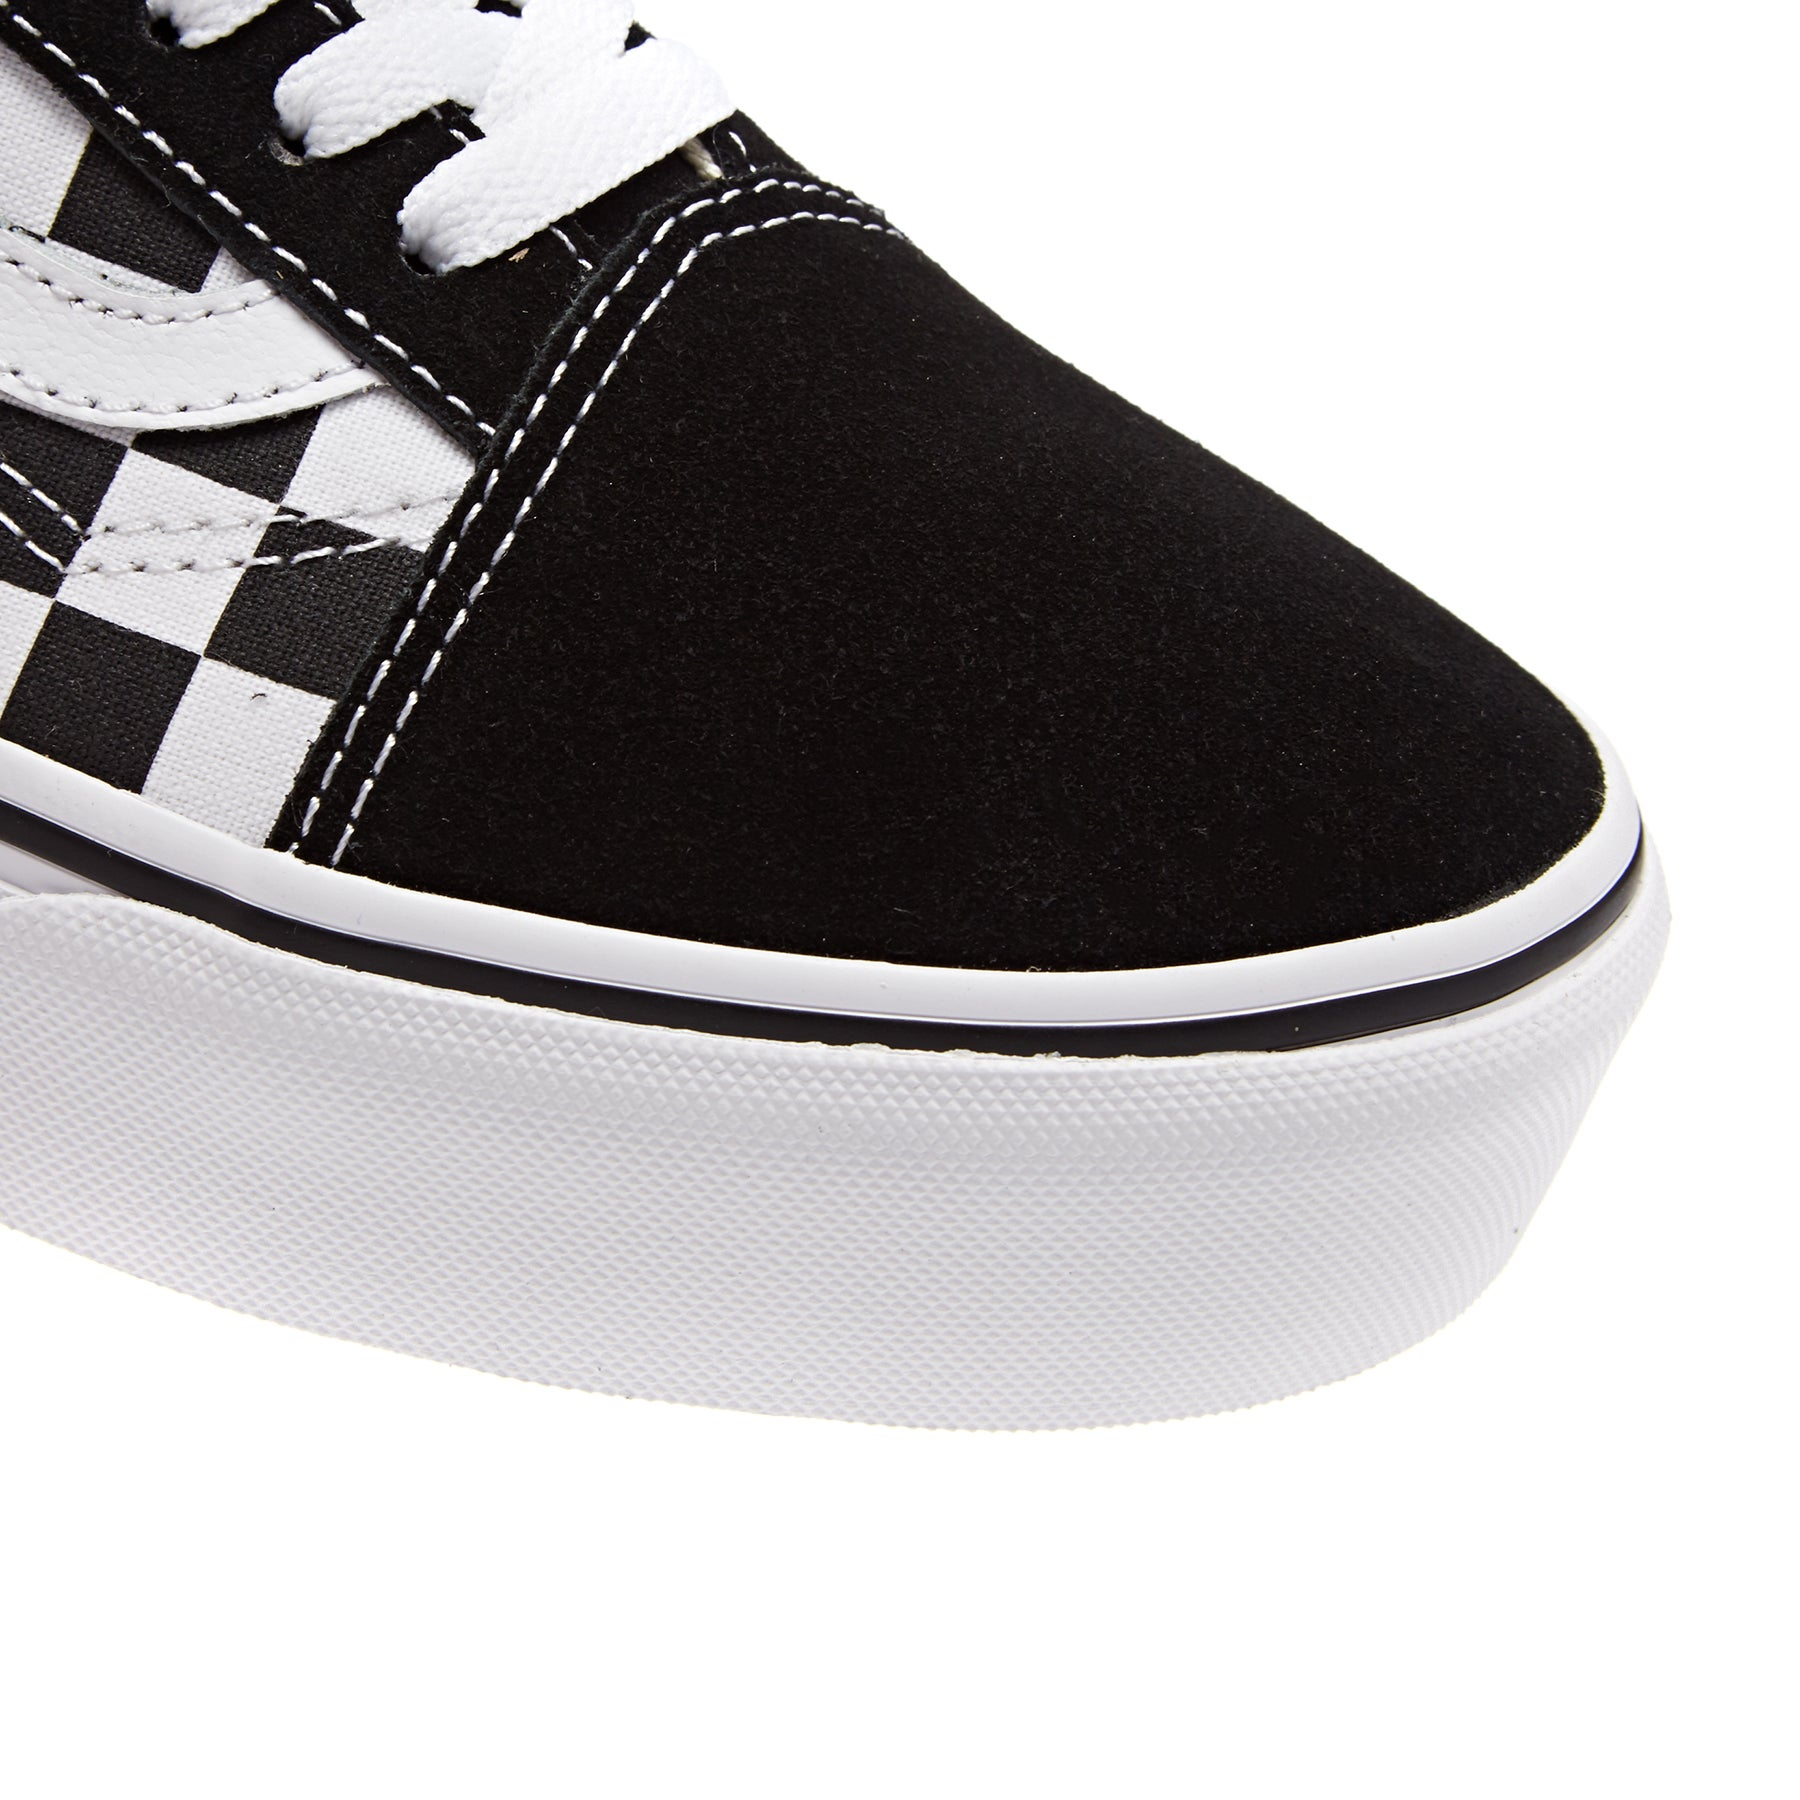 ad5fd10929 Vans Ua Old Skool Platform Shoes available from Surfdome